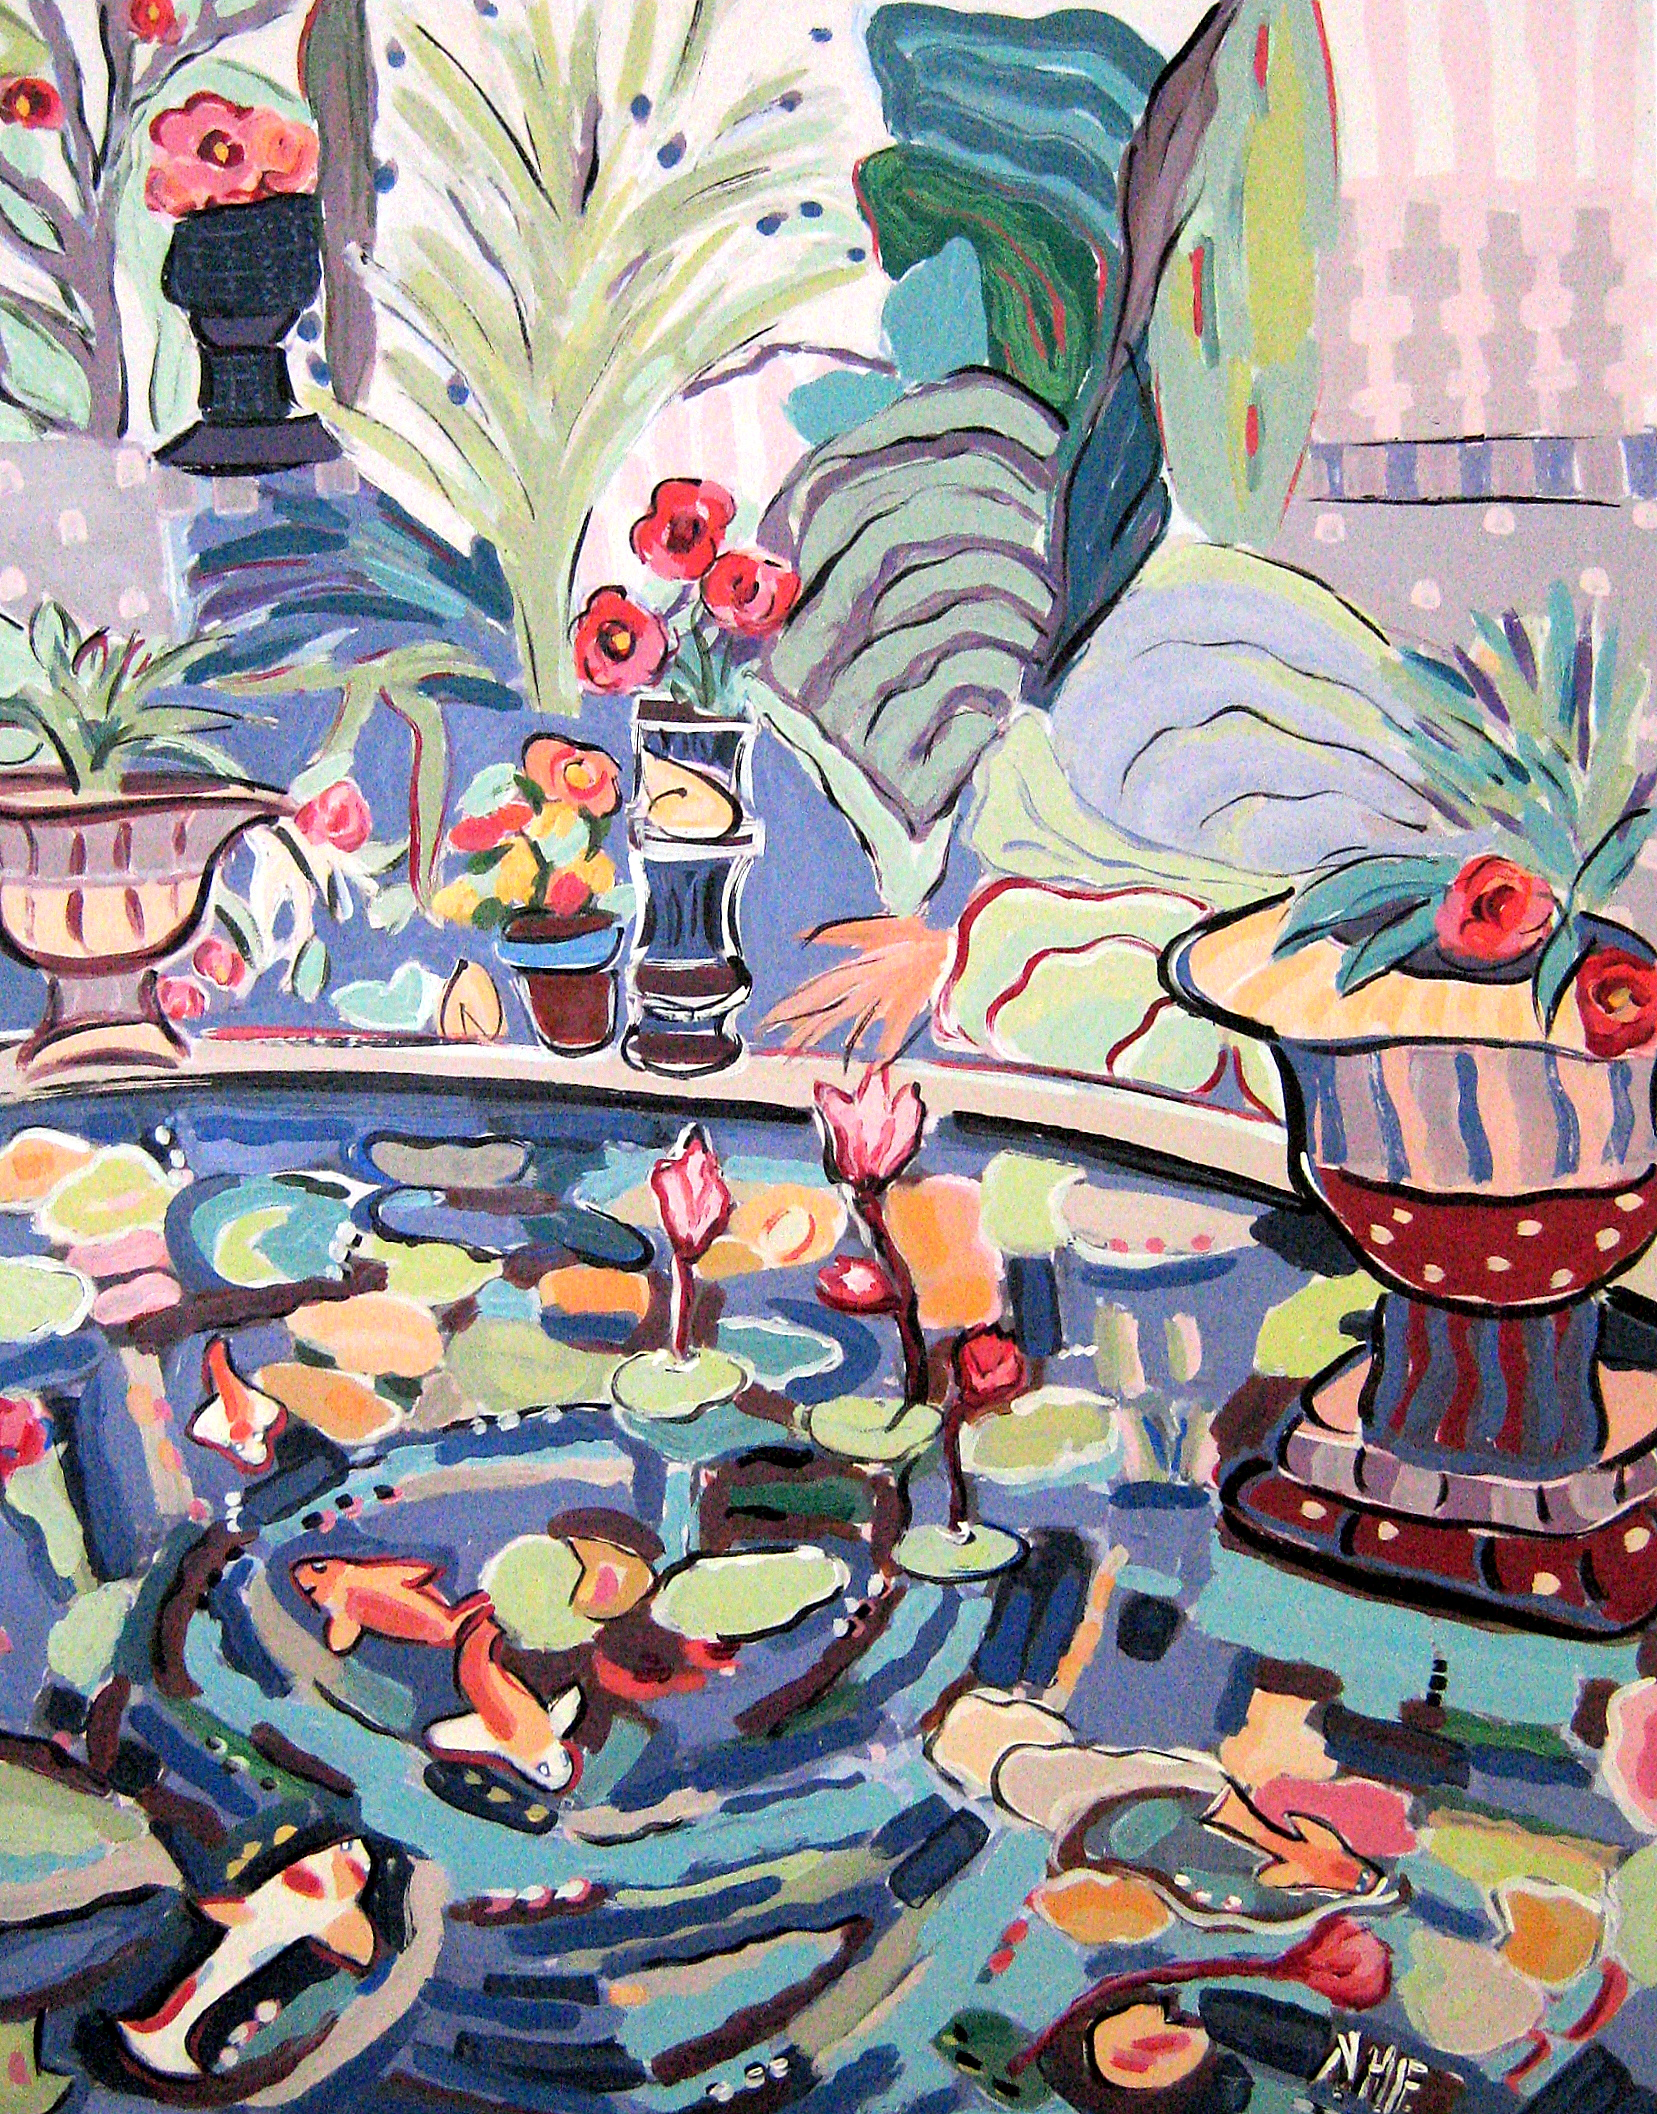 Stone Urns by the Lily Pond 2 , acrylic on mounted board, 18x15, 22x20 matted